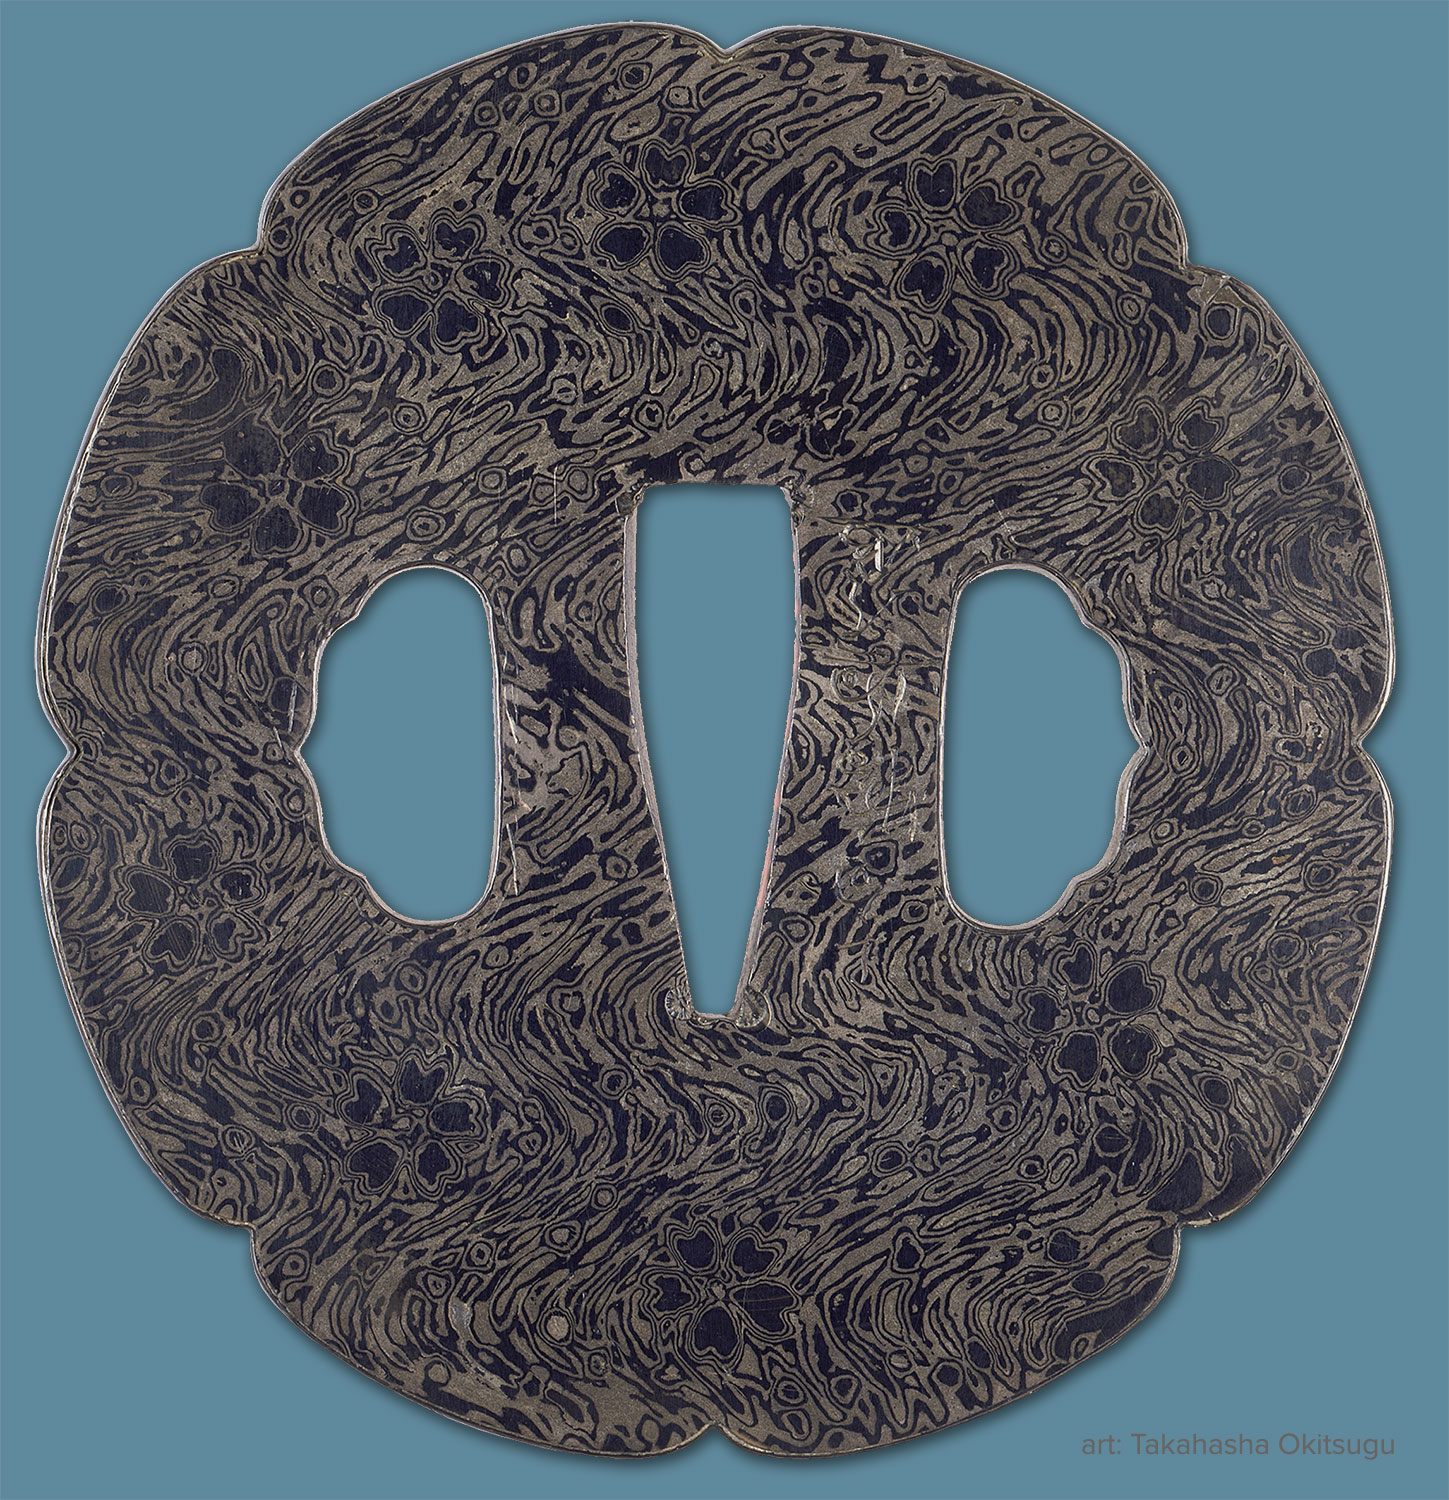 Tsuba by Takahasha Okitsugu. 19th Century. Probably Shibuichi and Shakudo. Pattern depicts plum blossoms floating on water. Courtesy: Museum of Fine Arts, Boston. William Sturgis Bigelow Collection.